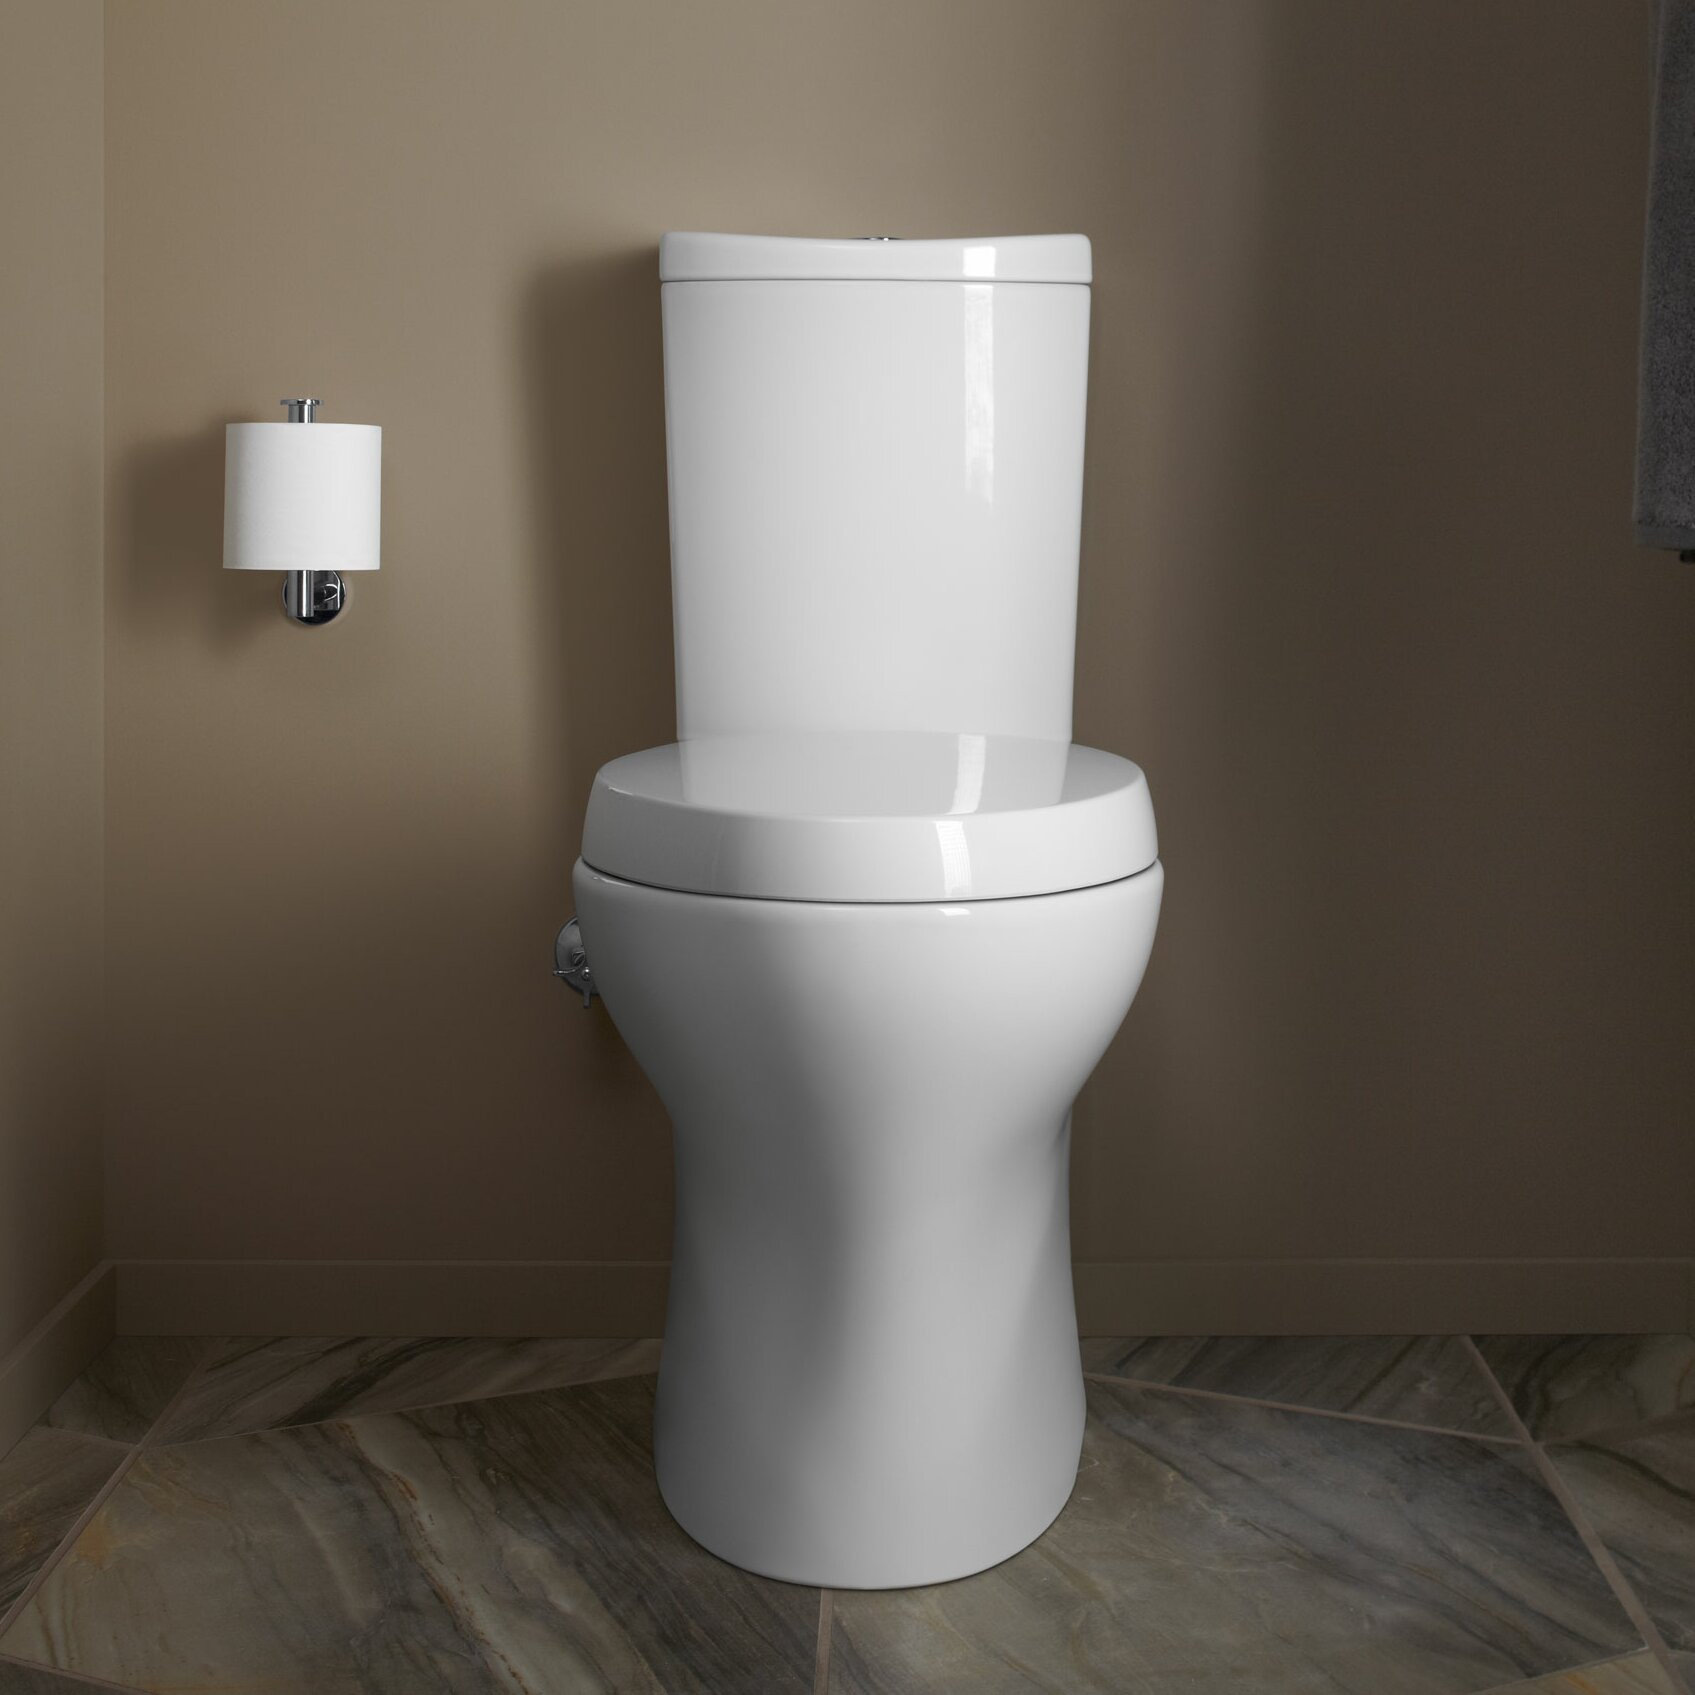 ... Fixtures ... Two-Piece Toilets Kohler Part #: K-3723 SKU: KOH14181